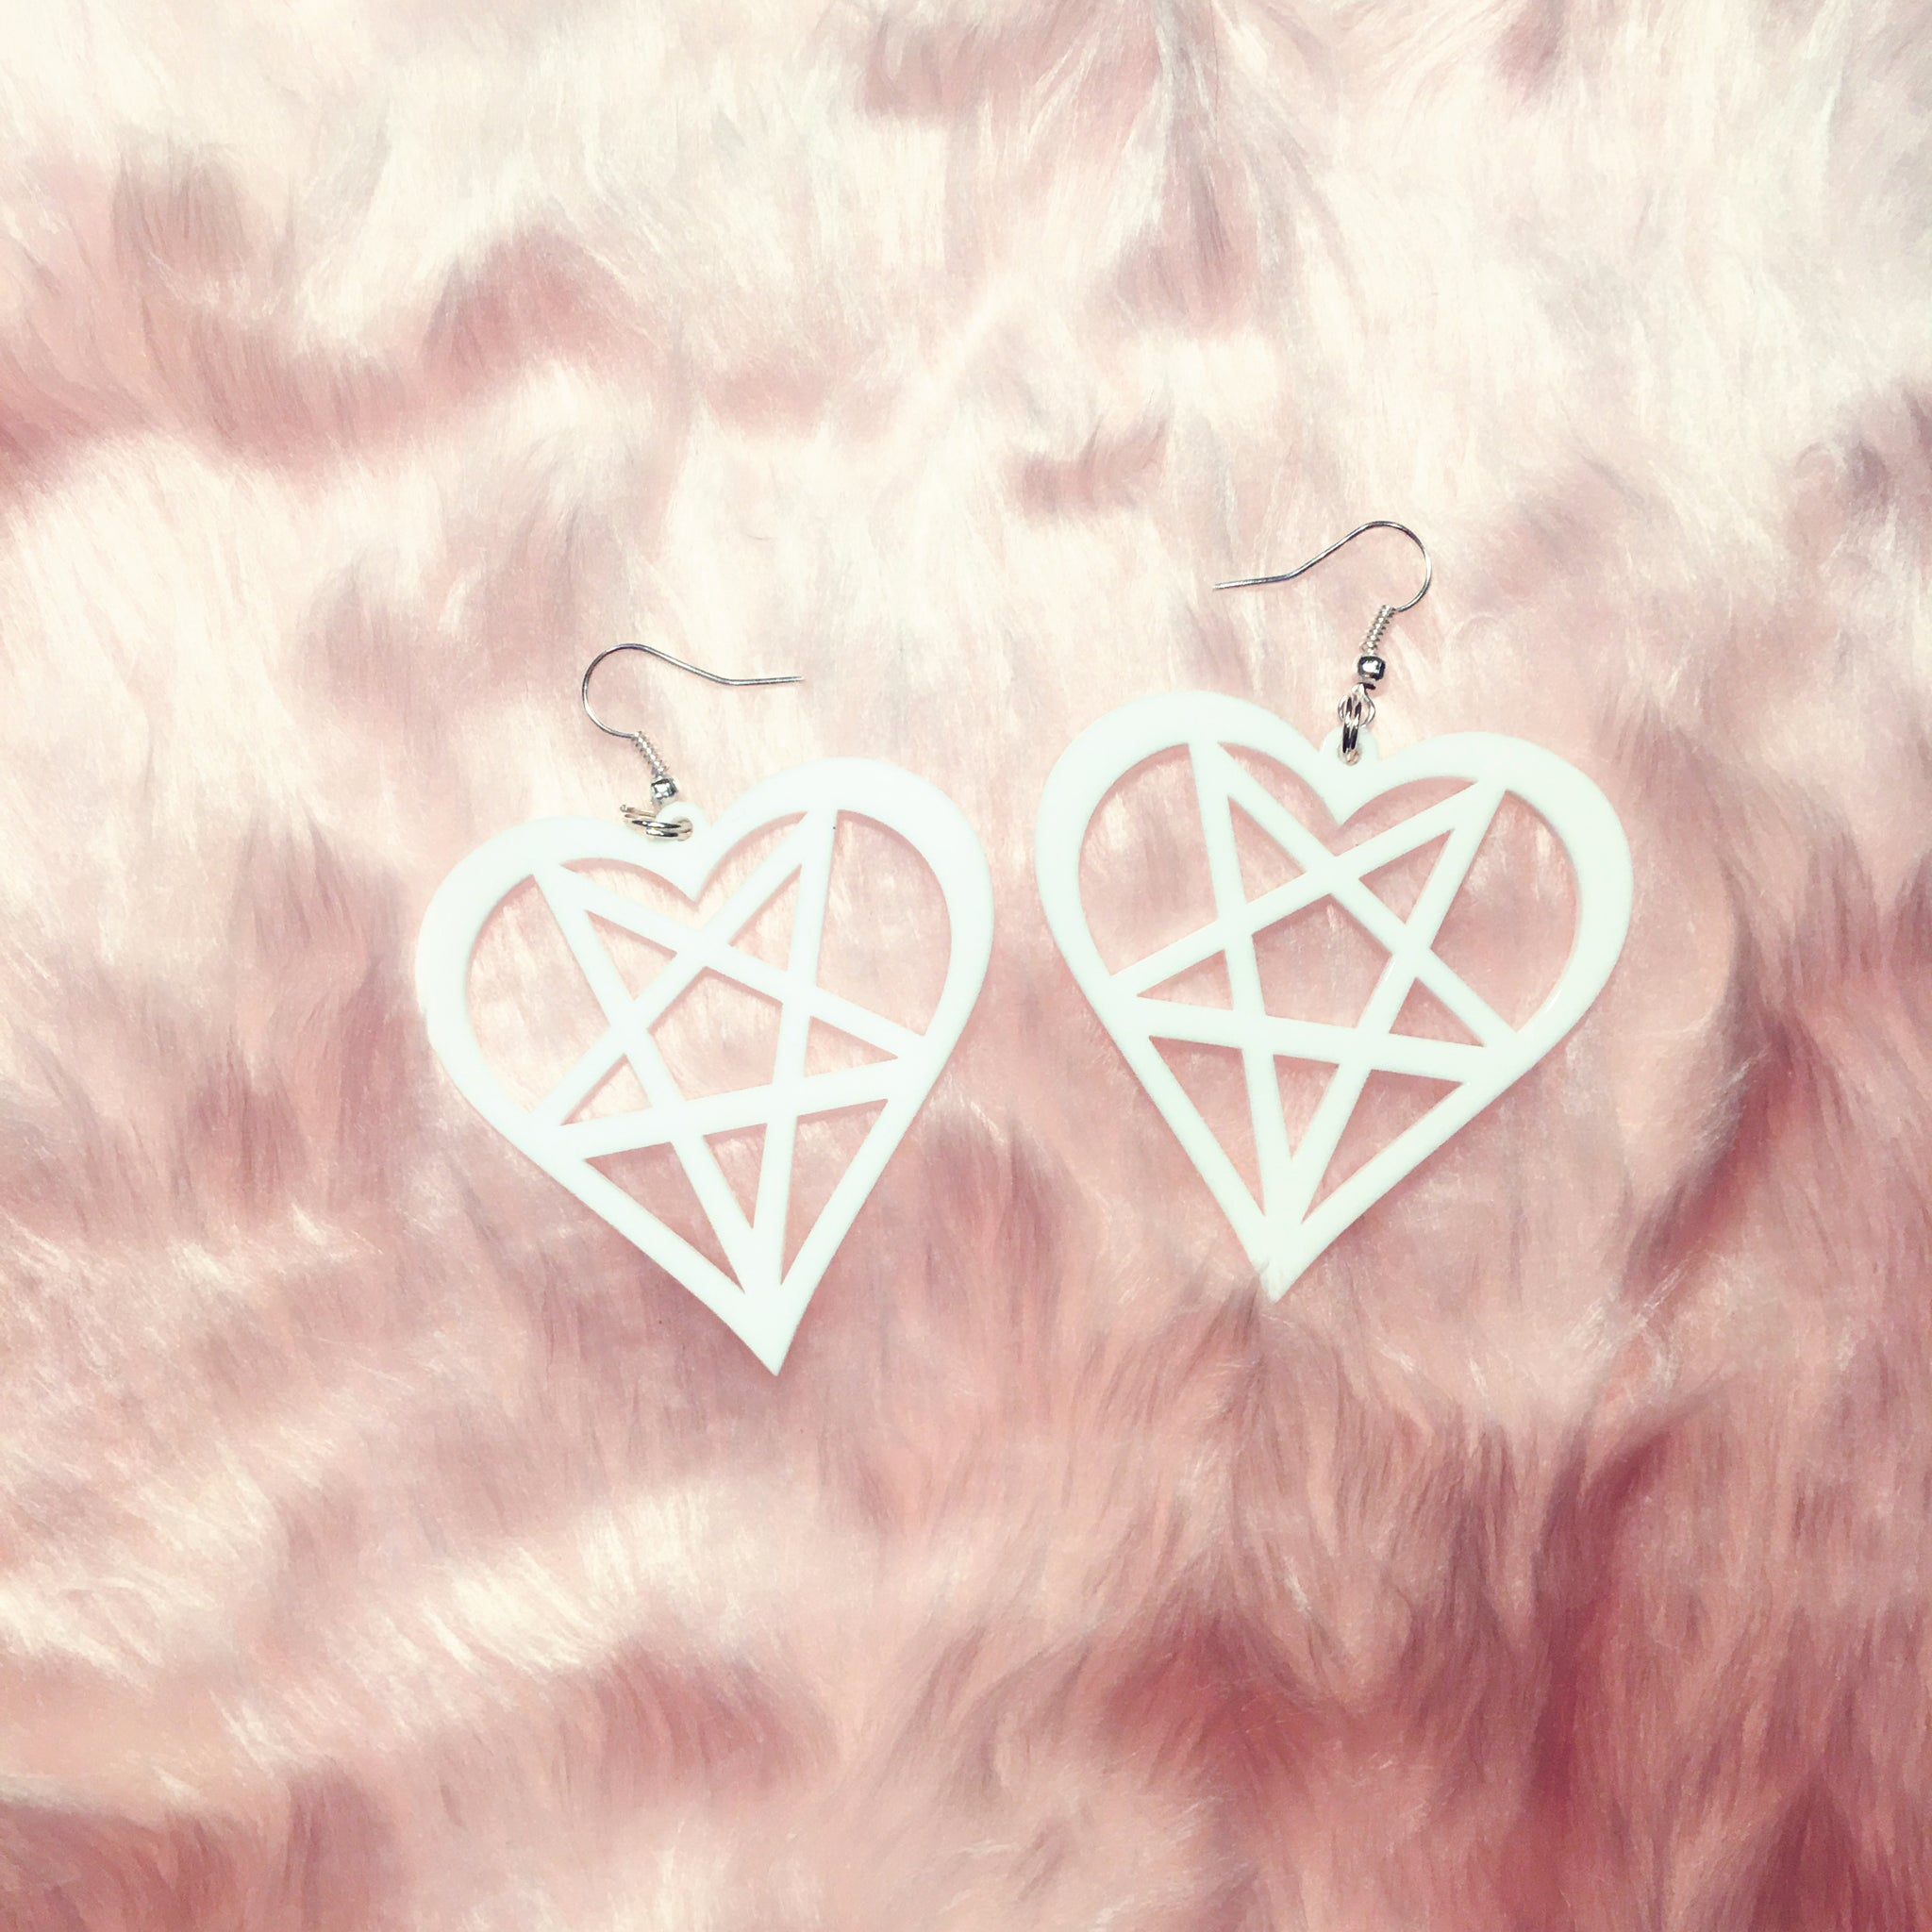 white angelic pentagram magical girl earrings heart star laser acrylic cut jewellery at BABY VOODOO - Shop BABYVOODOO.COM